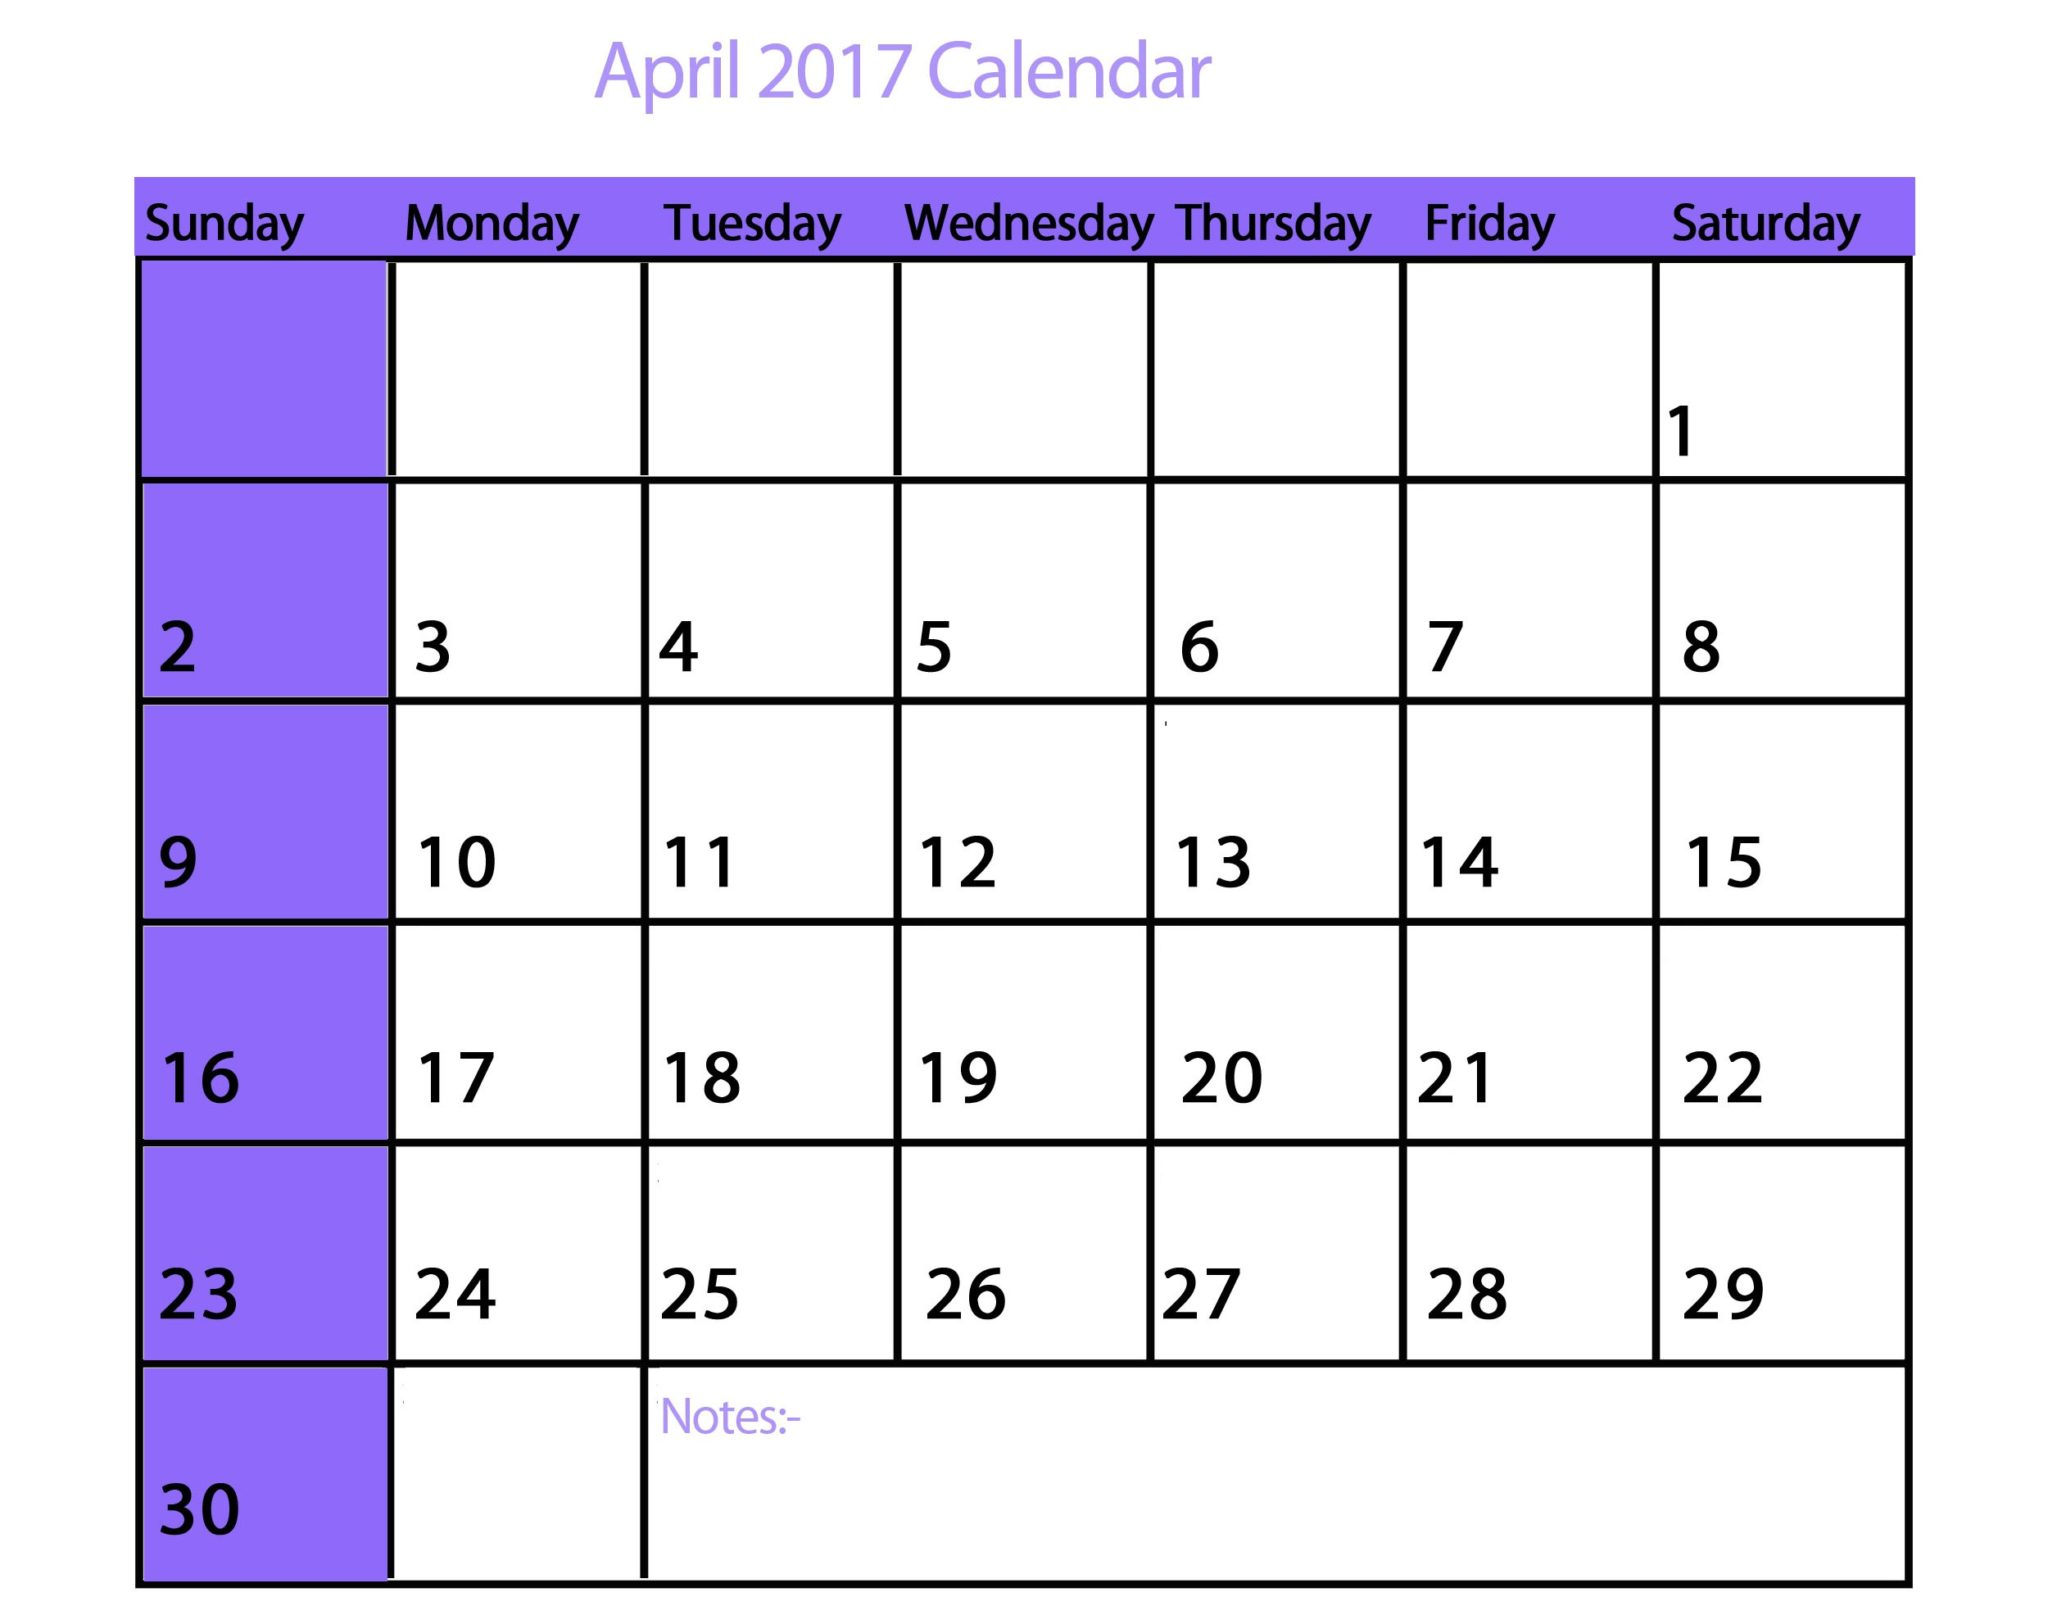 April Calendar Singapore : Cute april printable calendar usa uk canada india